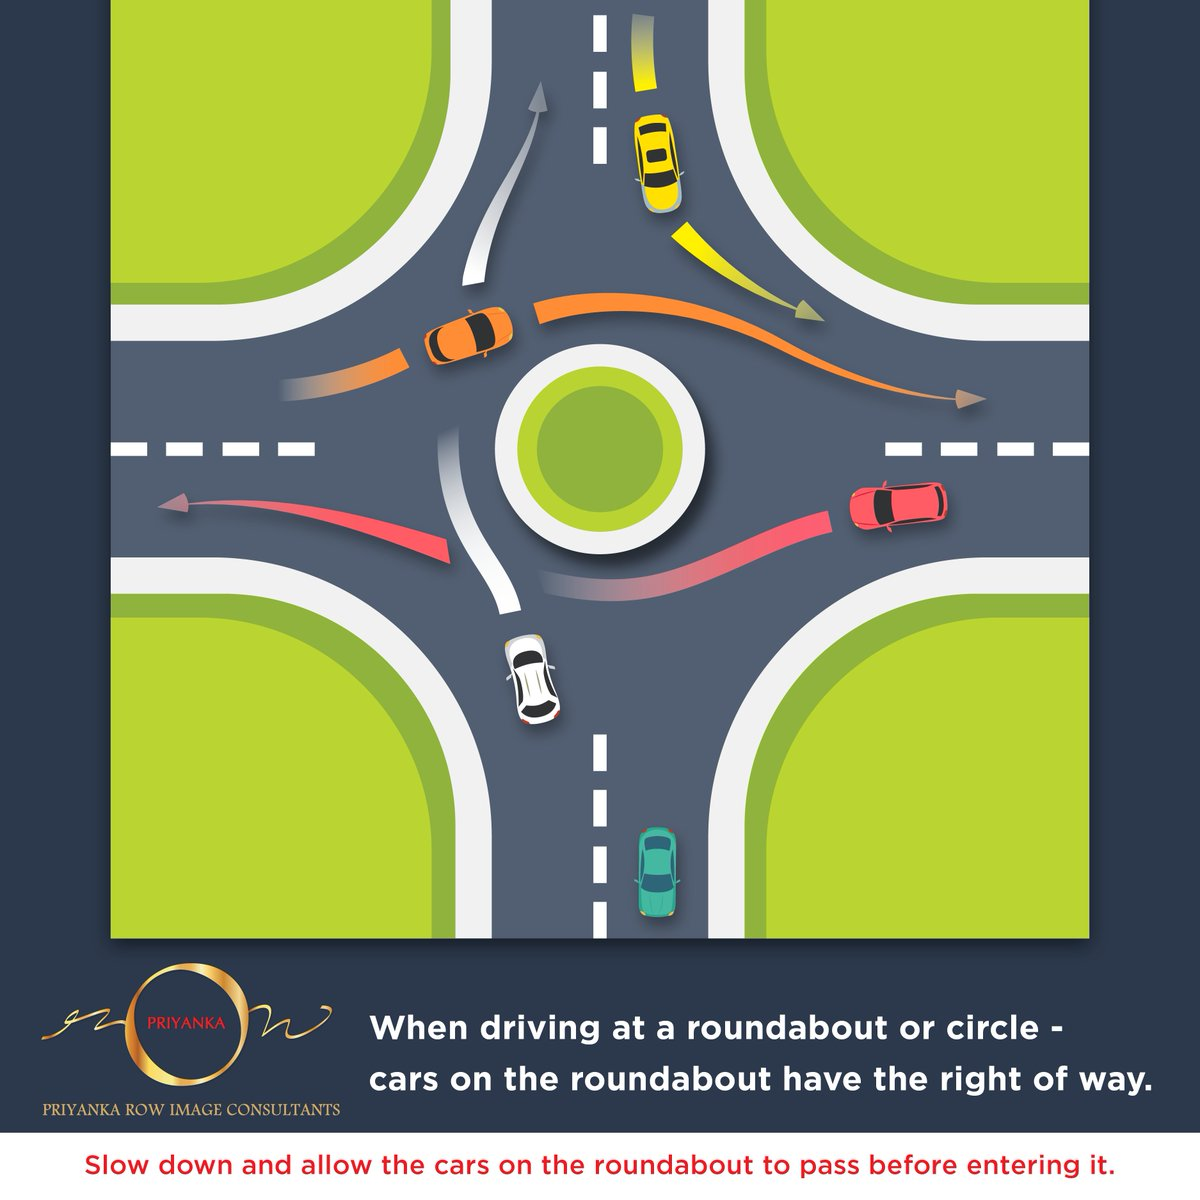 When it comes to driving, Road Etiquette and Politeness are the key principles to live by.  Practice social courtesy!  #PRIMAC #SocialEtiquette #RoadEtiquette #courtesy #roundabout #drivingrules #learning<br>http://pic.twitter.com/9diBIKjdN4